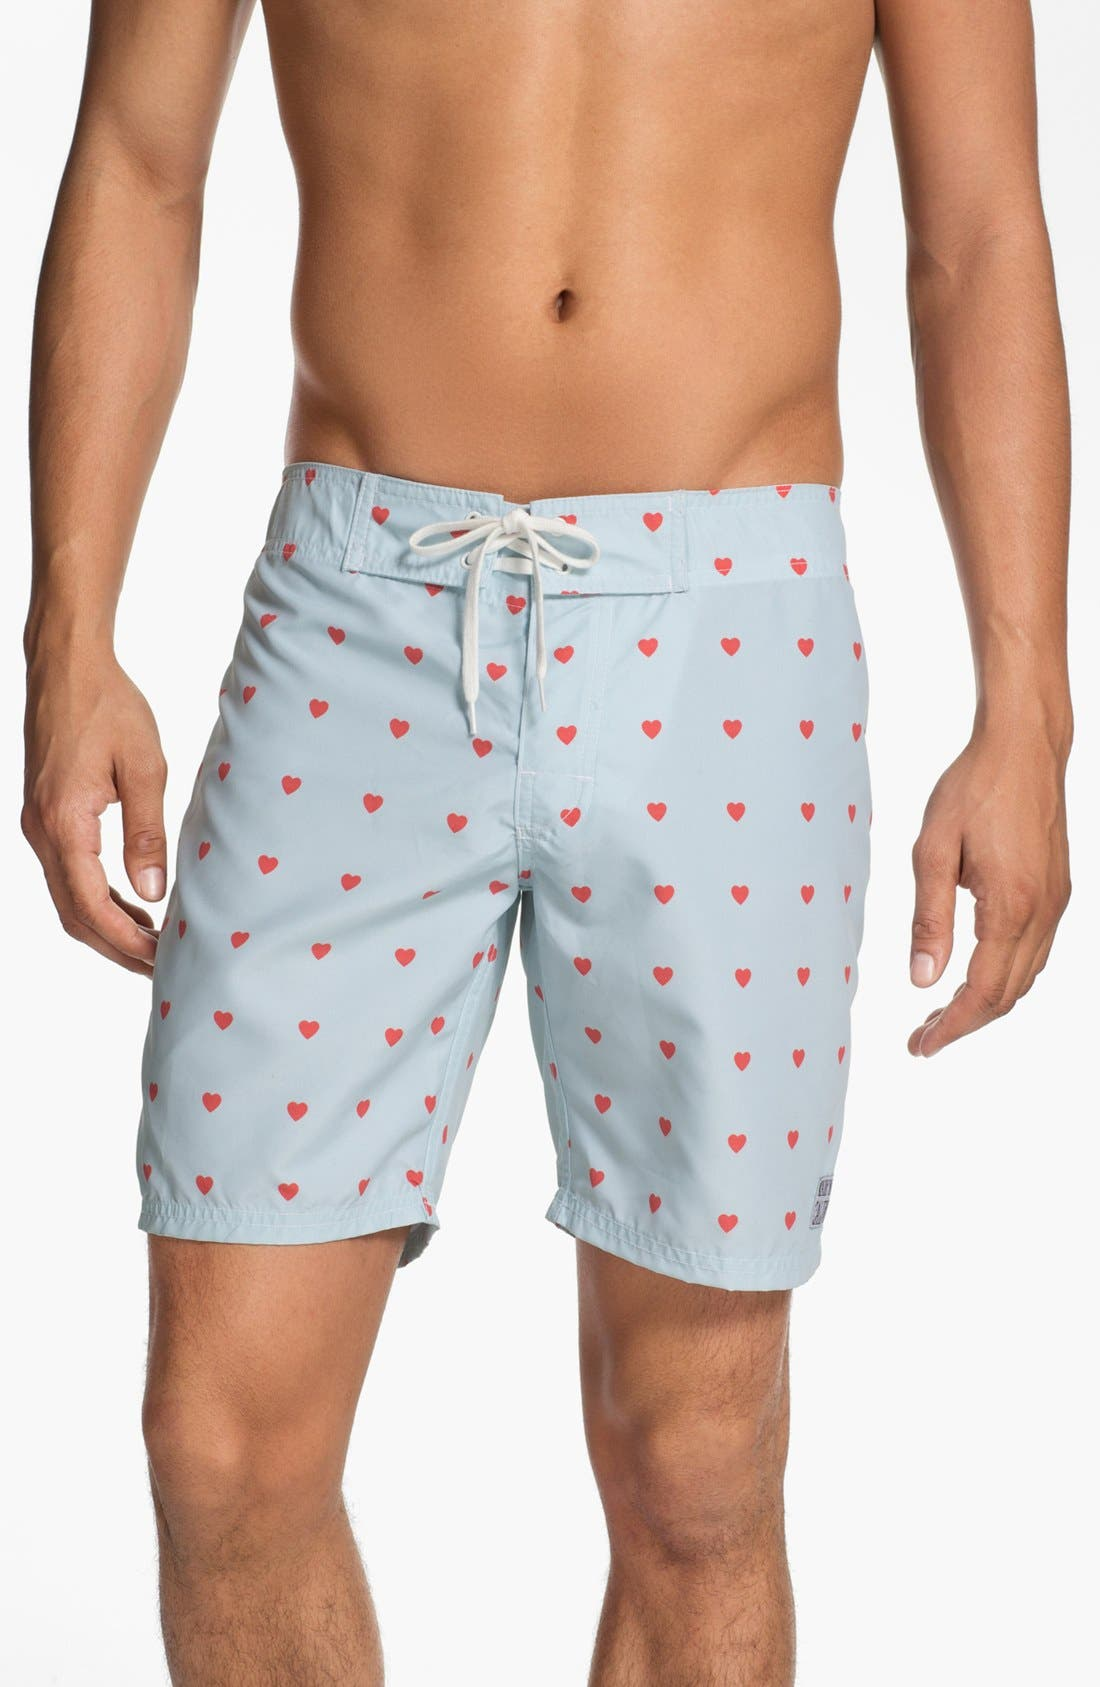 Main Image - ambsn 'Cupid' Print Board Shorts